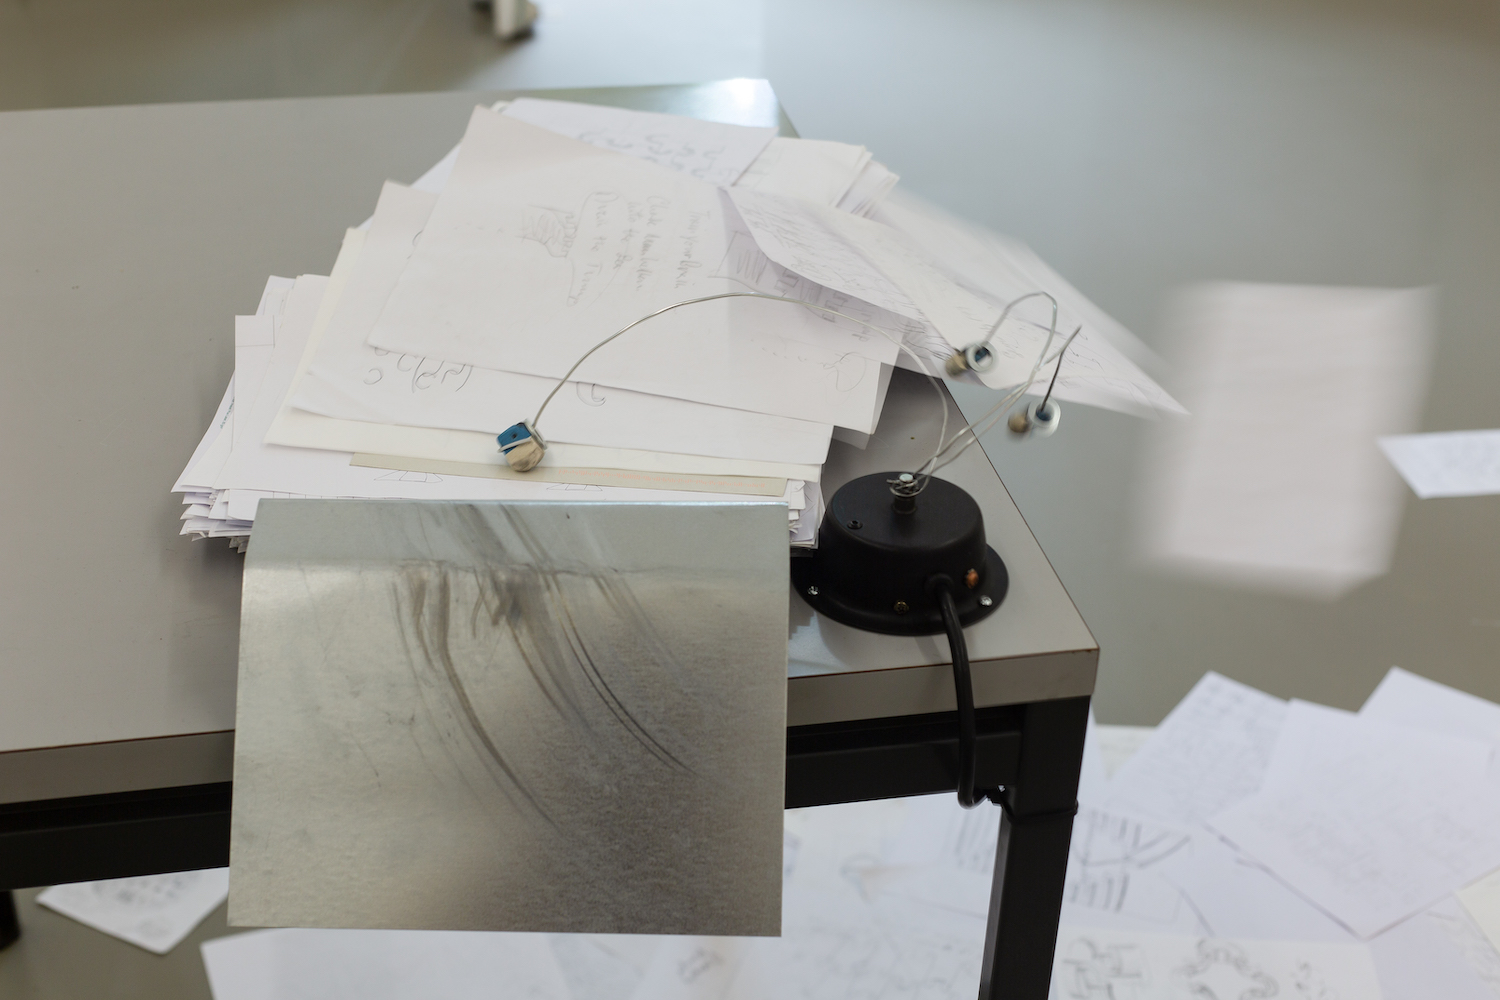 Sam Porritt, Duty of Care, 2020. Assorted studio drawings, motor, steel, table. Dimensions Variable.